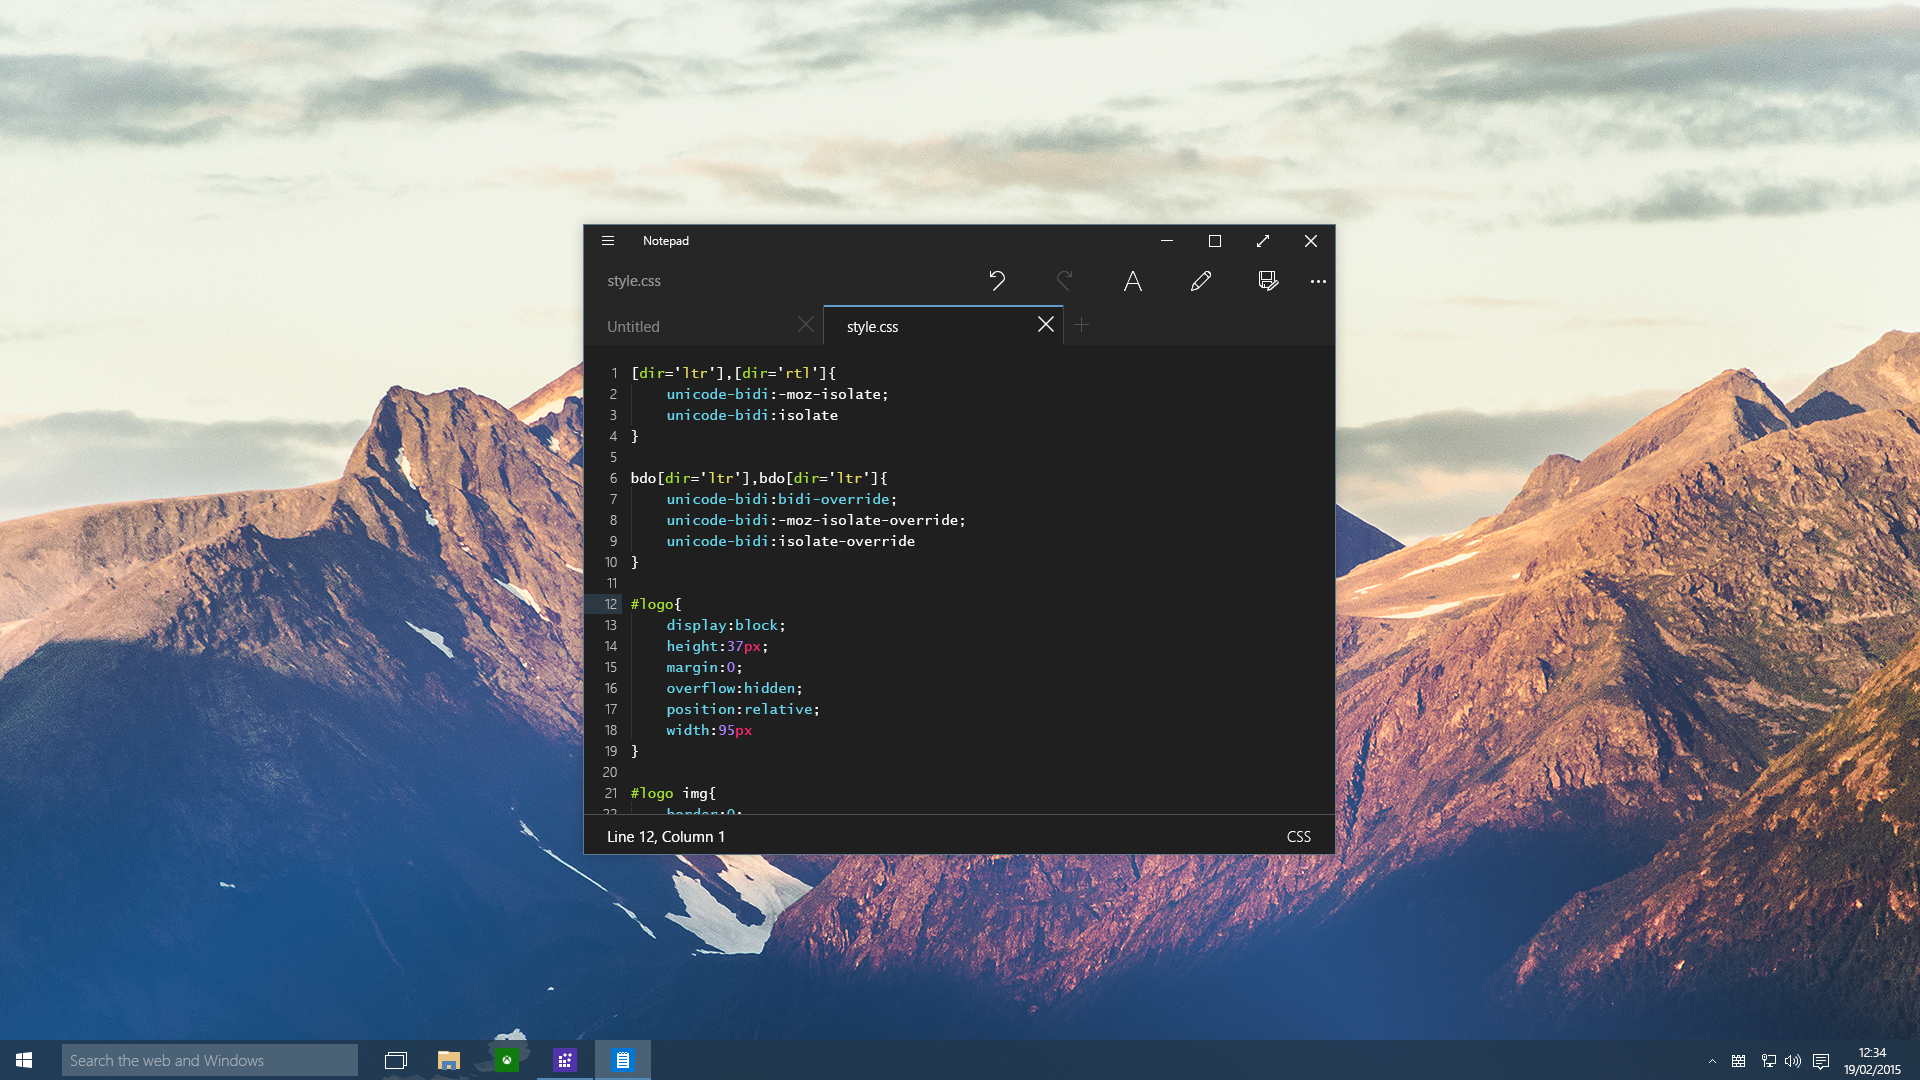 Windows 10 - Notepad (dark theme)